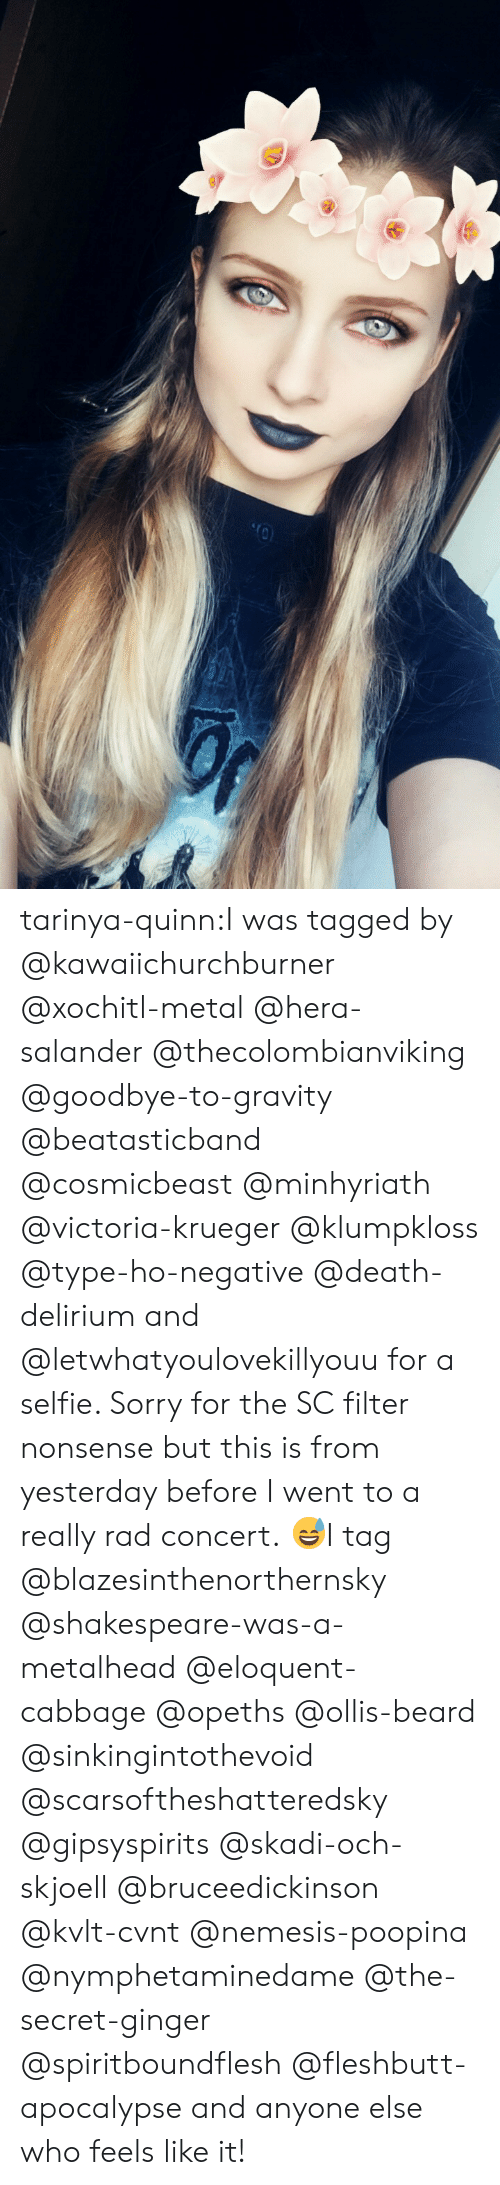 Beard, Selfie, and Shakespeare: tarinya-quinn:I was tagged by @kawaiichurchburner @xochitl-metal @hera-salander @thecolombianviking @goodbye-to-gravity @beatasticband @cosmicbeast @minhyriath @victoria-krueger @klumpkloss @type-ho-negative @death-delirium and @letwhatyoulovekillyouu for a selfie. Sorry for the SC filter nonsense but this is from yesterday before I went to a really rad concert. 😅I tag @blazesinthenorthernsky @shakespeare-was-a-metalhead @eloquent-cabbage @opeths @ollis-beard @sinkingintothevoid @scarsoftheshatteredsky @gipsyspirits @skadi-och-skjoell @bruceedickinson @kvlt-cvnt @nemesis-poopina @nymphetaminedame @the-secret-ginger @spiritboundflesh @fleshbutt-apocalypse and anyone else who feels like it!